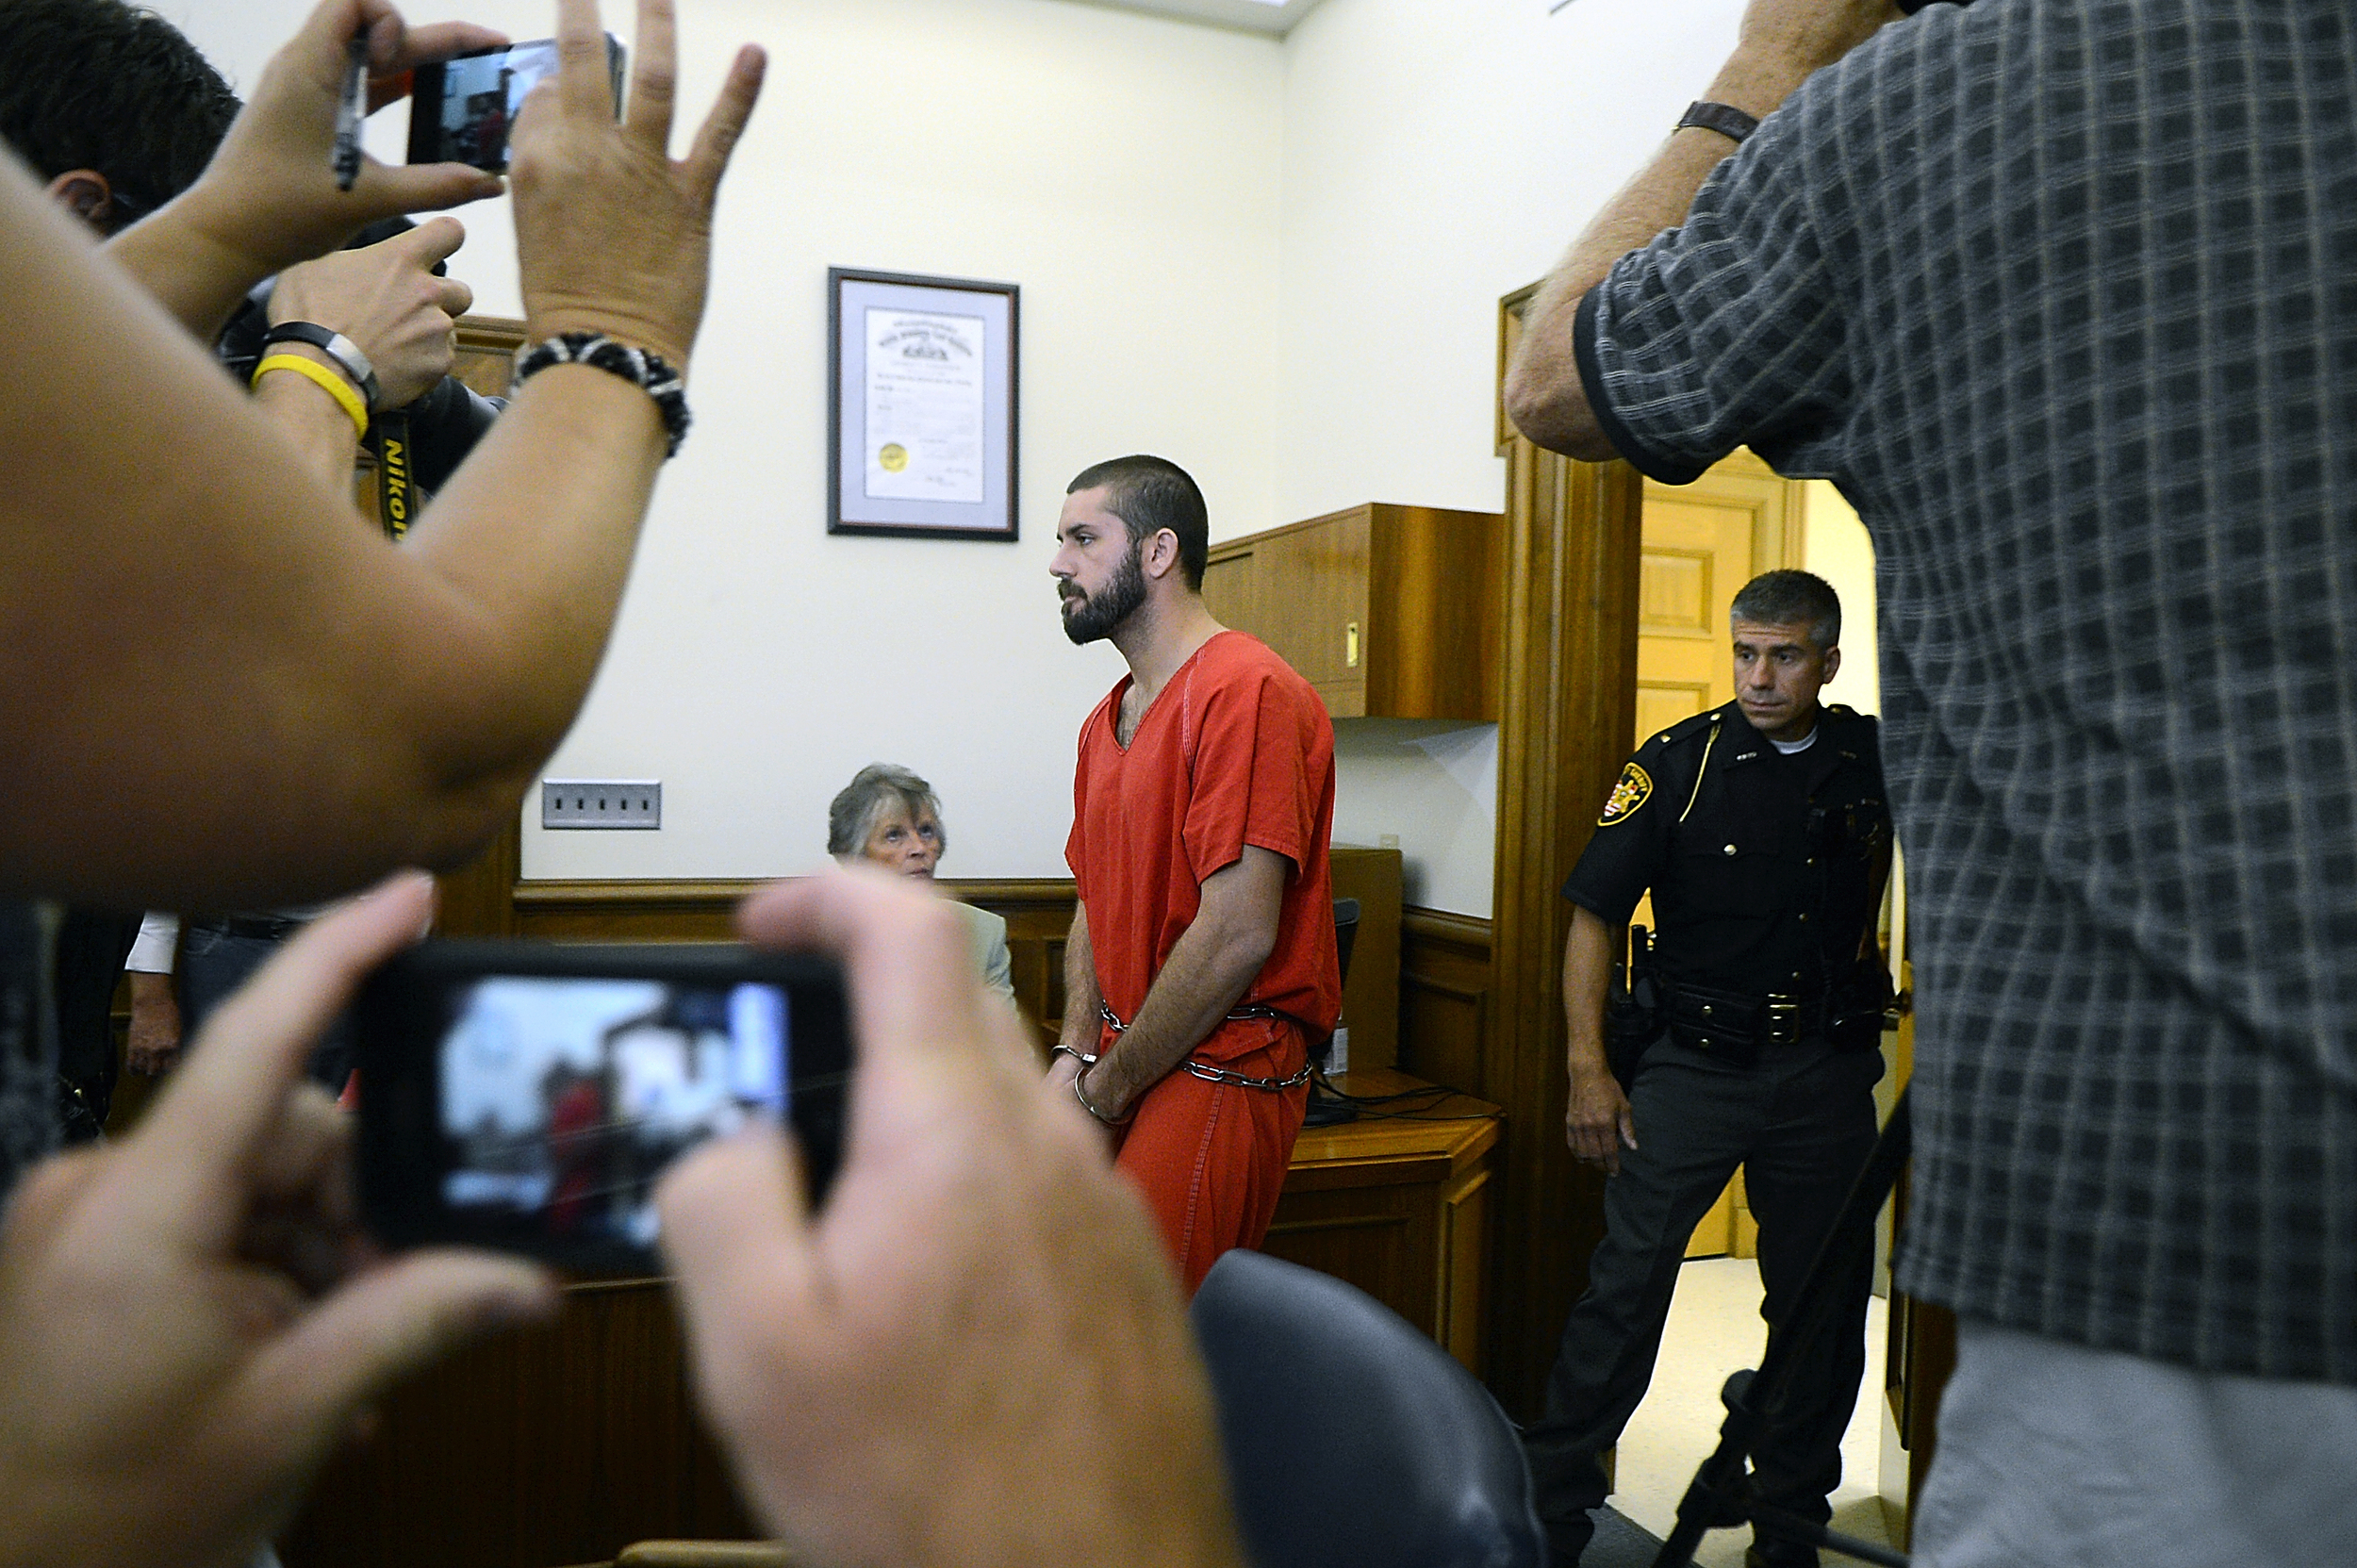 Nate Summerfield enters the courtroom for his hearing at Medina County Common Pleas Court, Friday Aug. 17, 2012, in Medina, Ohio. Summerfield,  who was arrested Wednesday morning in the slaying of his former girlfriend Lynn Jackenheimer, waived his right to extradition at the brief hearing. (Ashland Times-Gazette)